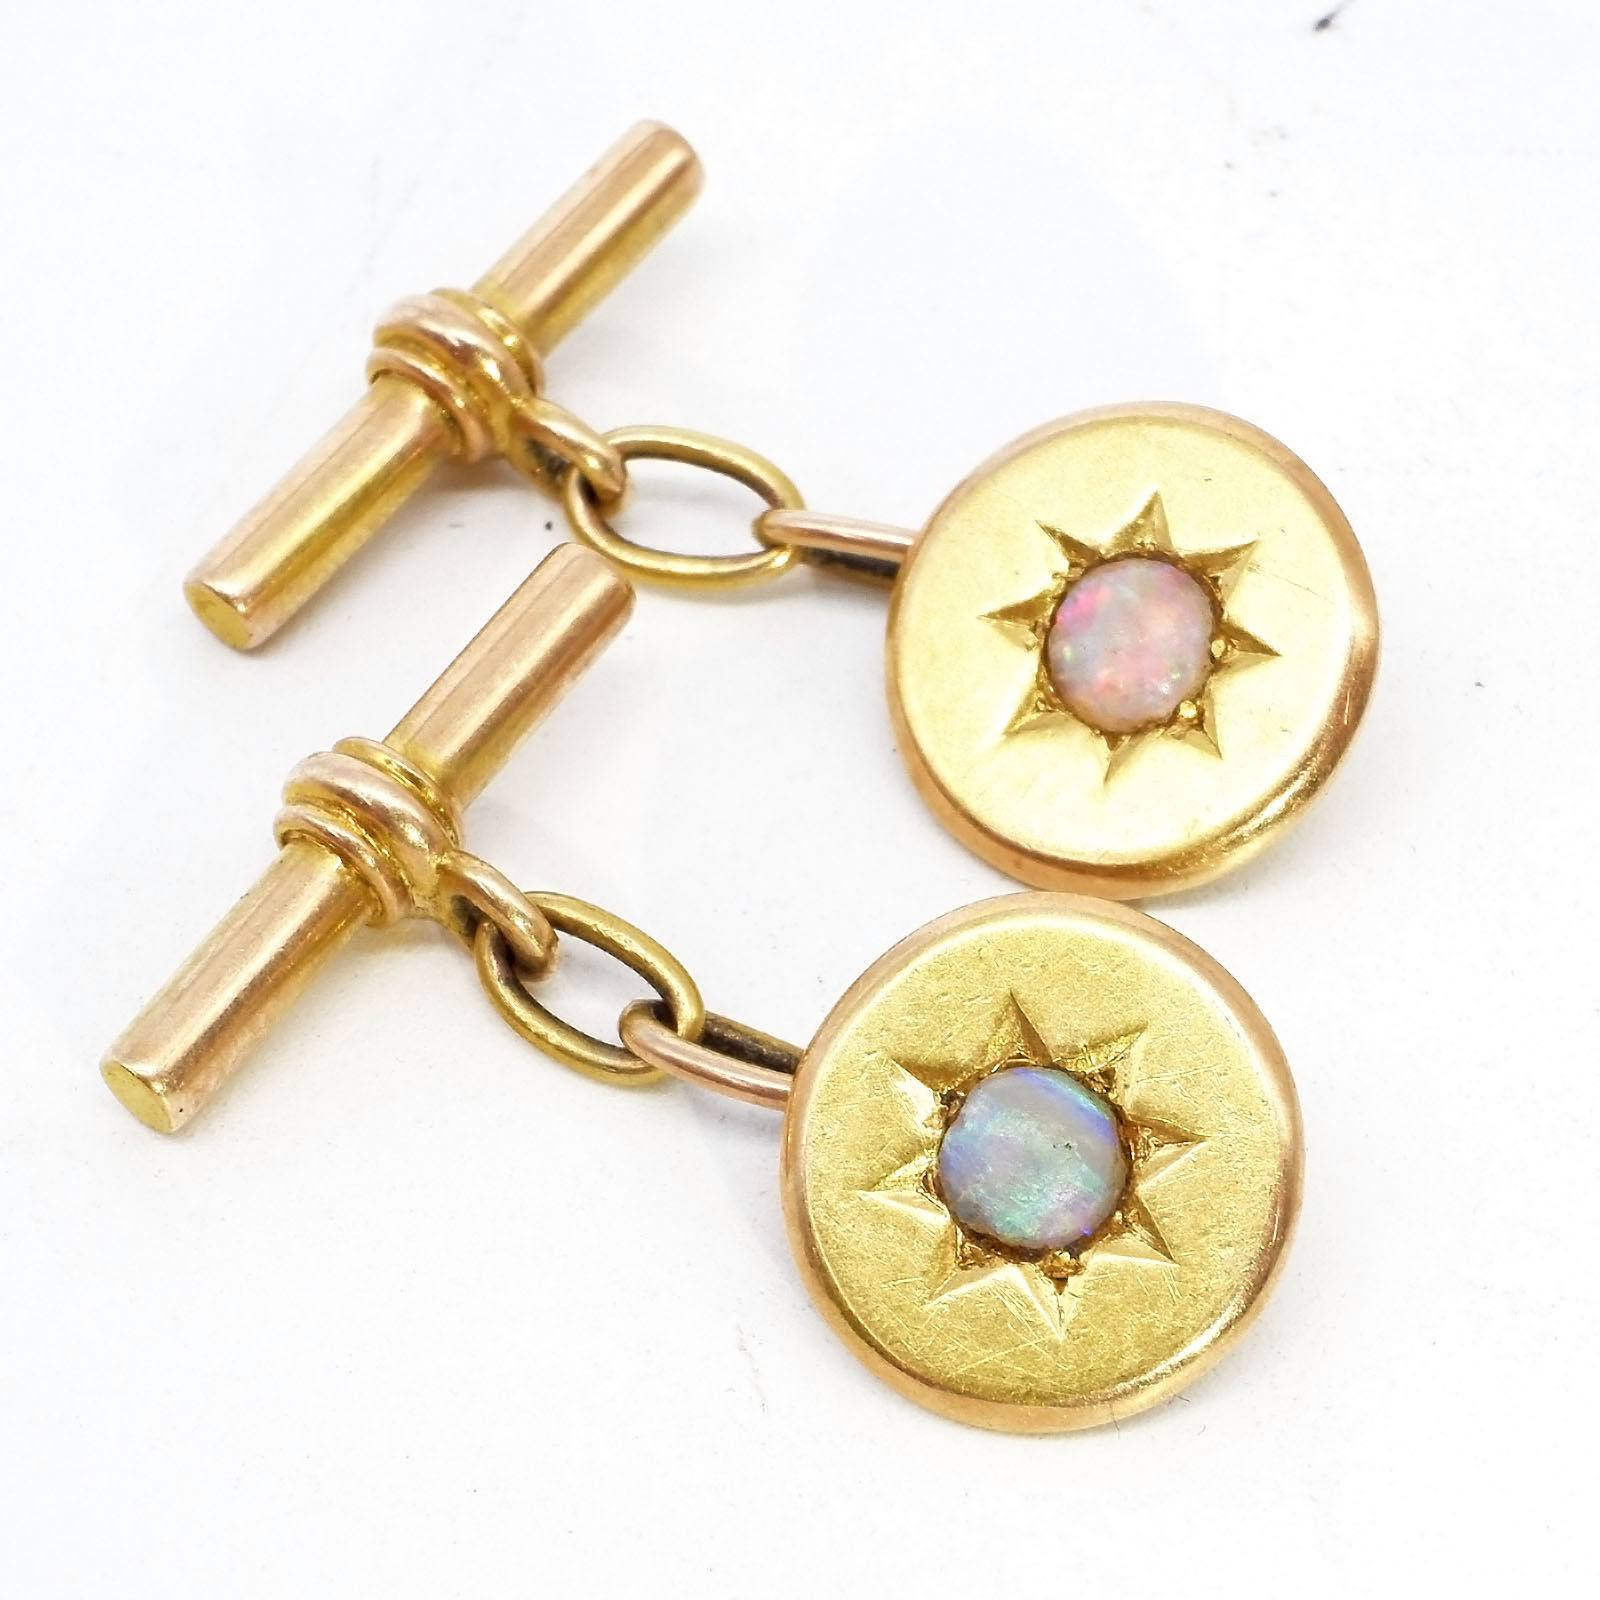 '15ct Yellow Gold Gents Cuff Links with a Round Oval Cabochon at Centre in a Star Setting, 6.6g'